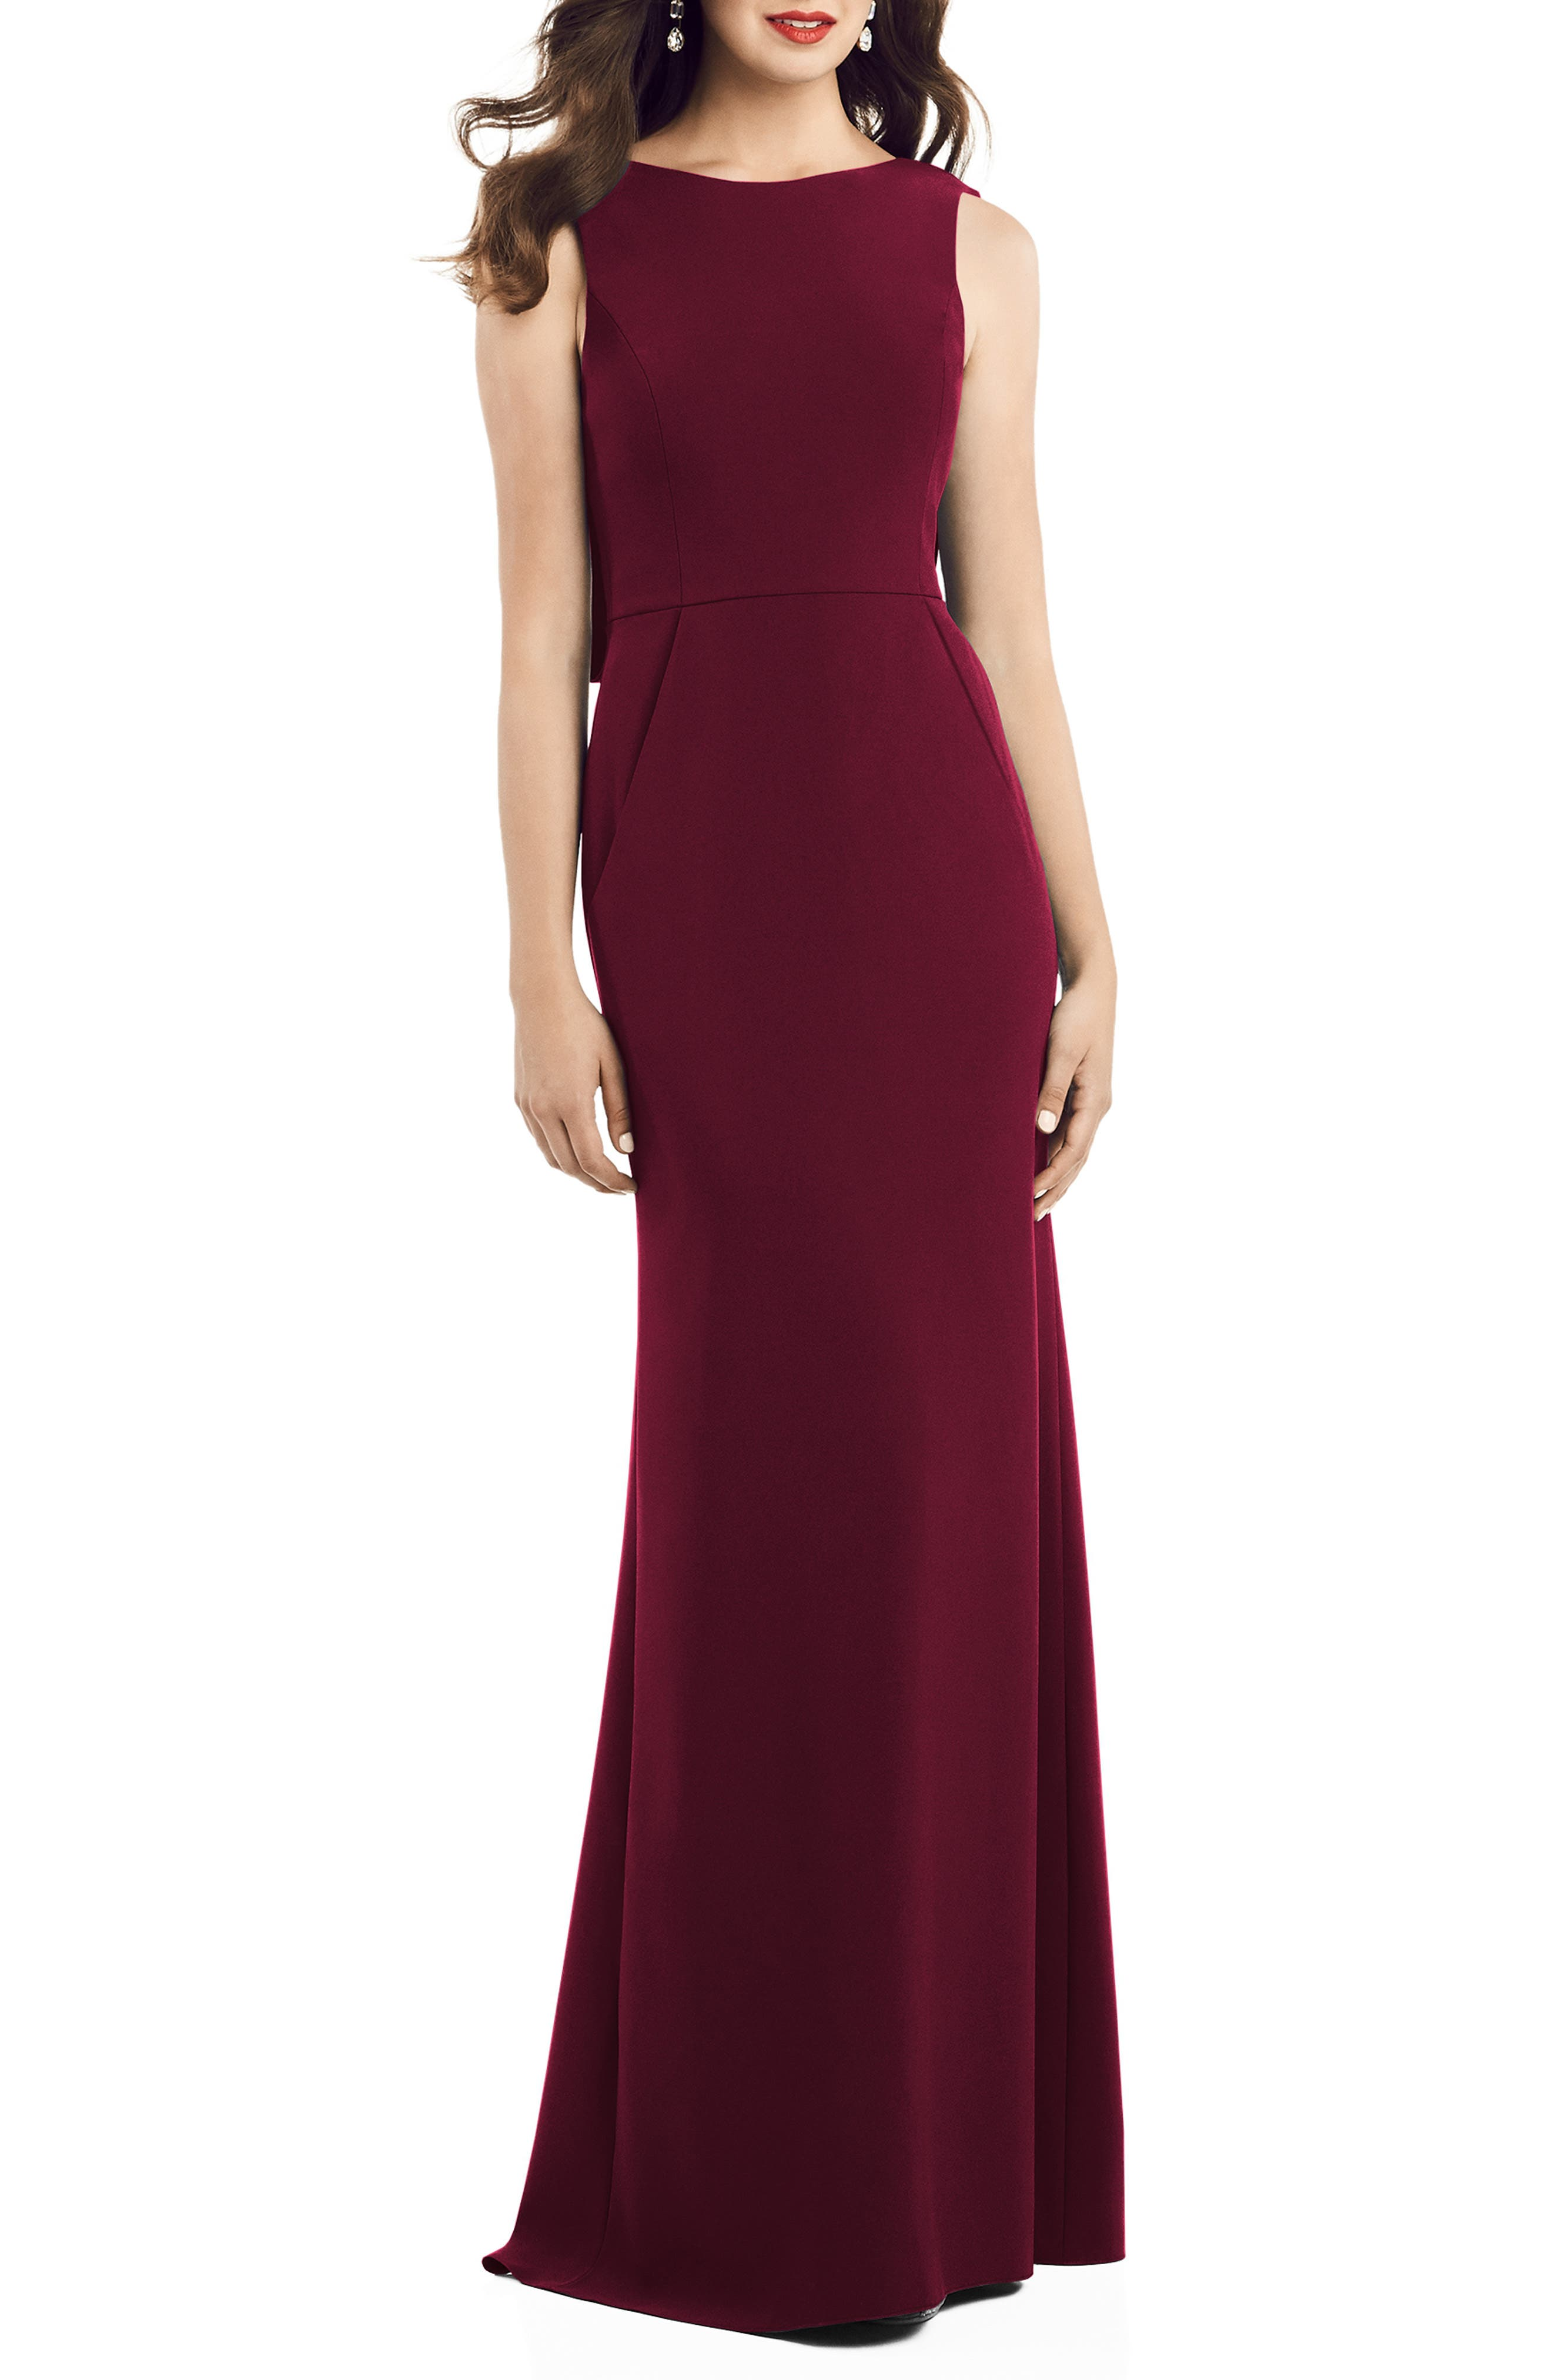 Amazing shape and a flared hem trumpet your entrance in this crepe gown that will not disappoint with a low V-back with draped panels. Style Name: Dessy Collection Crepe Trumpet Gown. Style Number: 6003841. Available in stores.